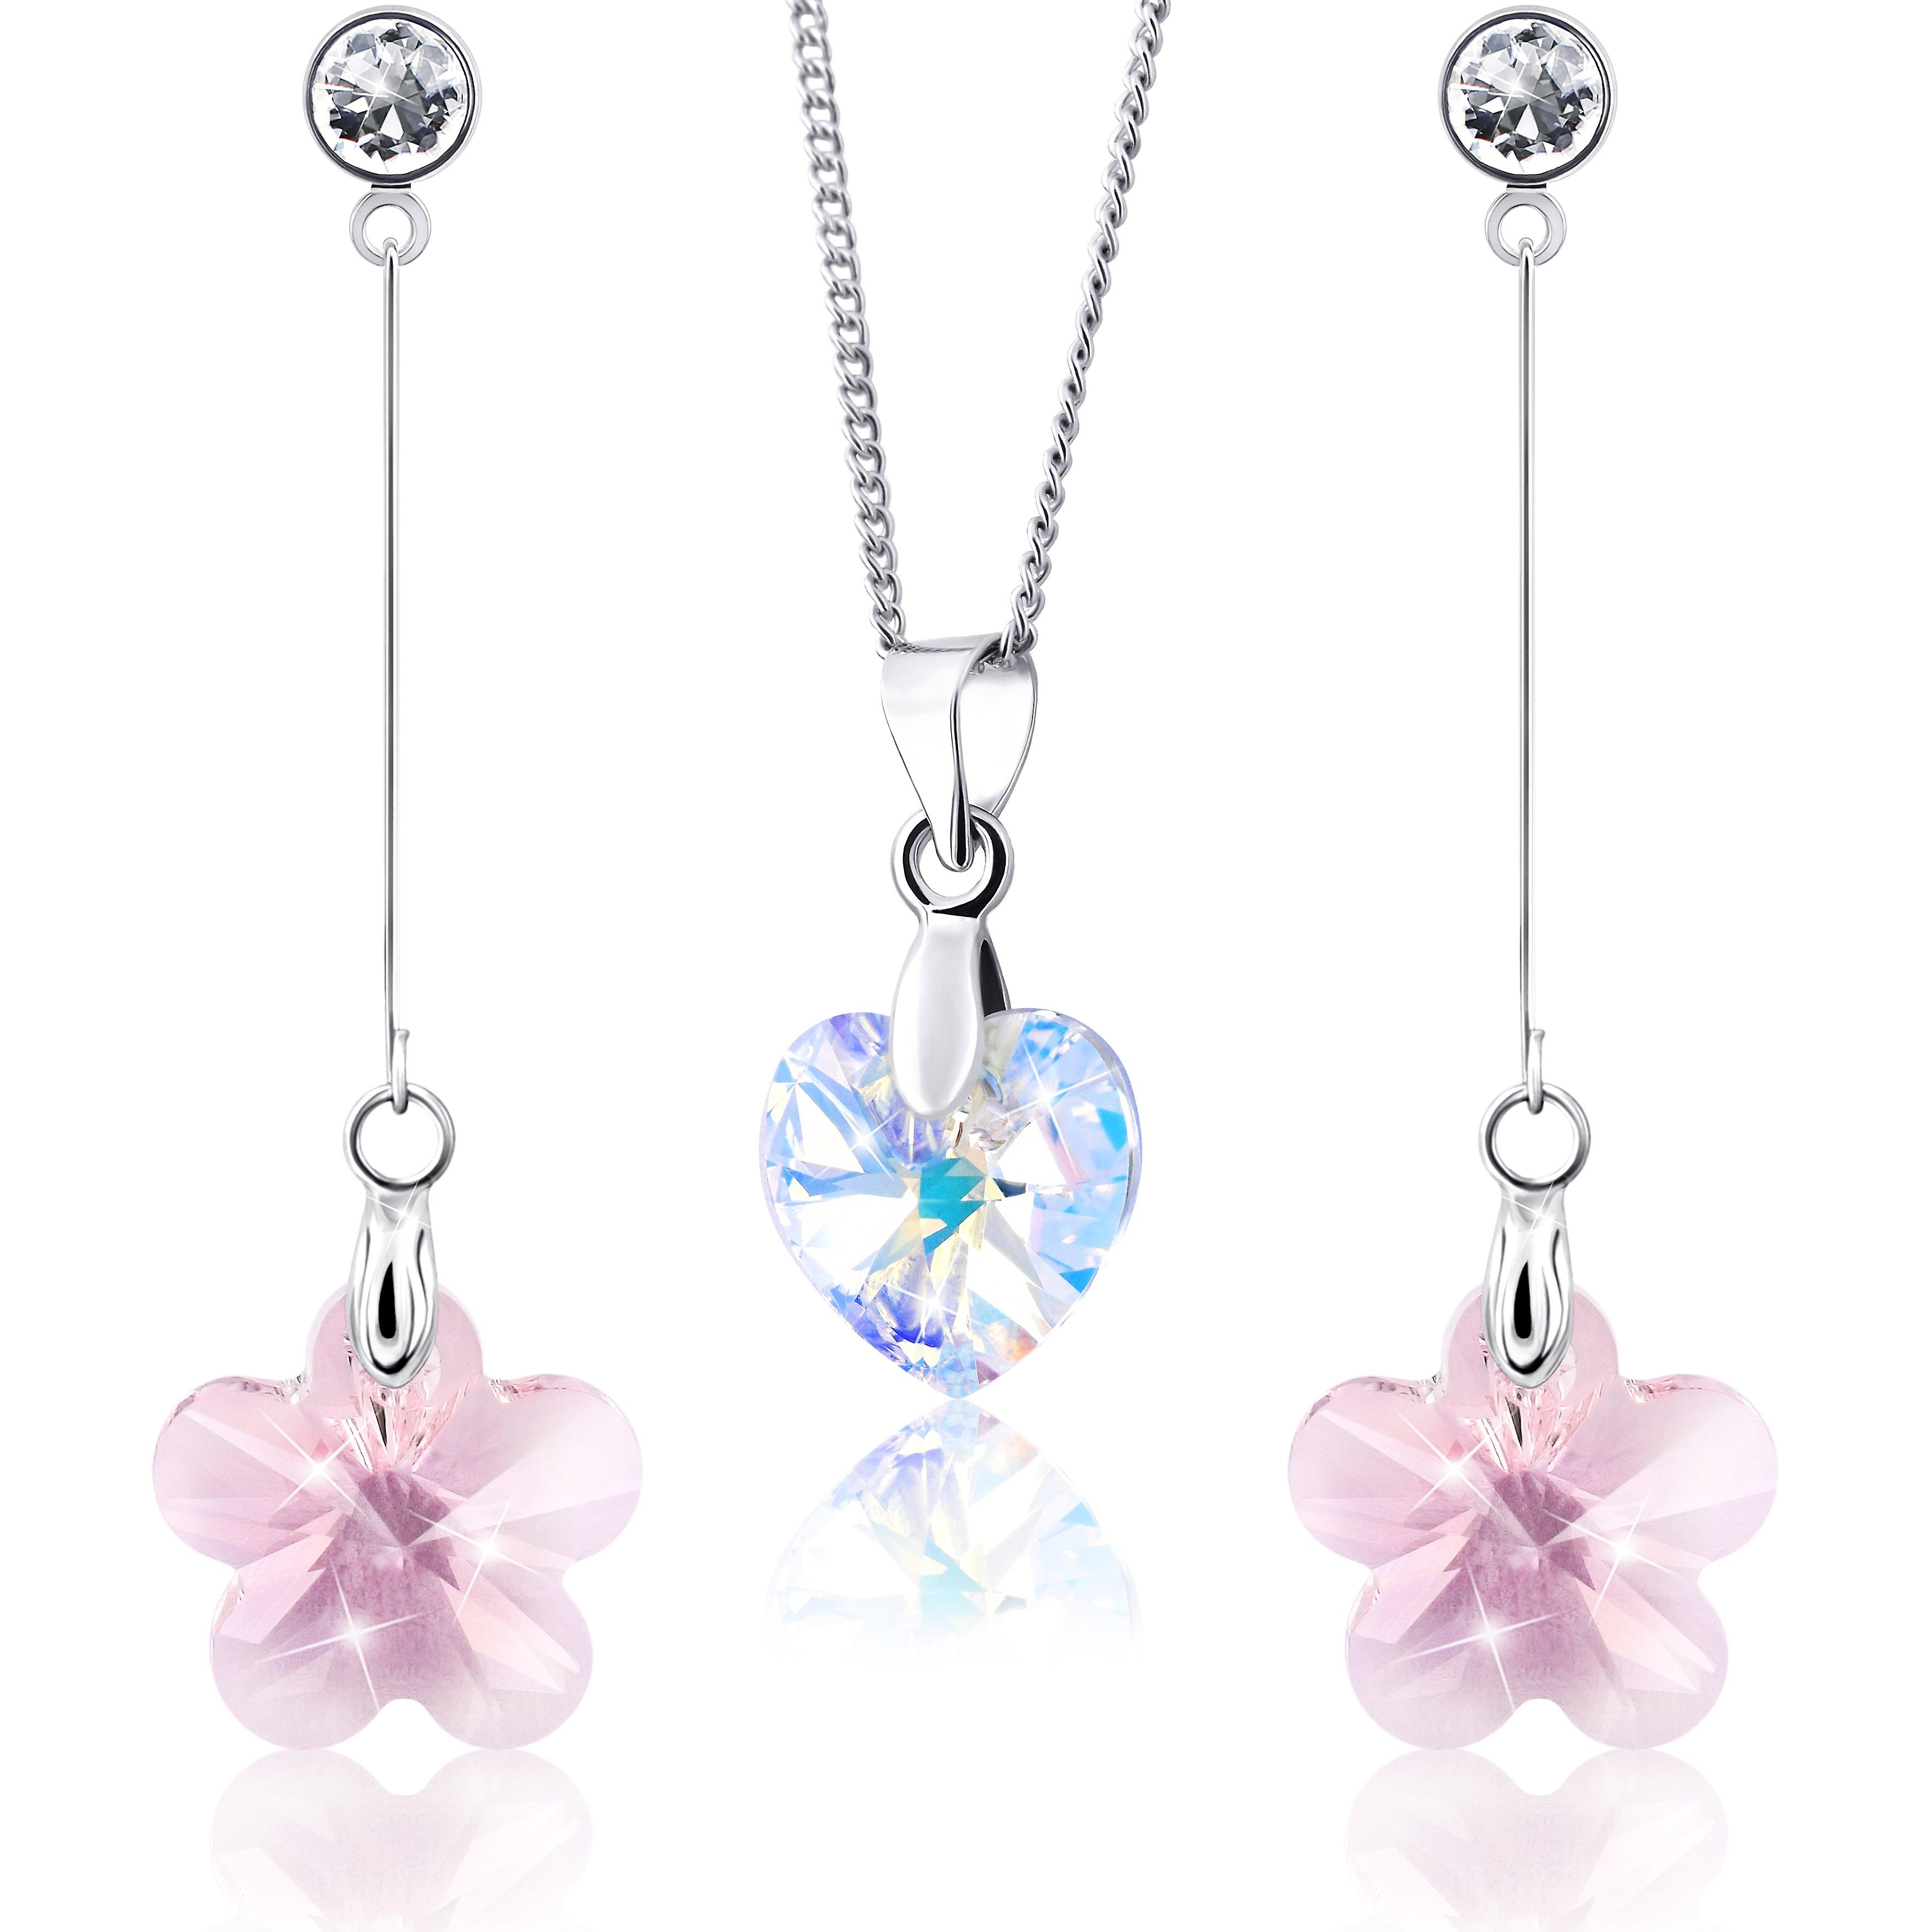 Rhodium plated earrings and necklace with swarovski crystal. jewellery box. by 2splendid. 2 for 1. enqz018